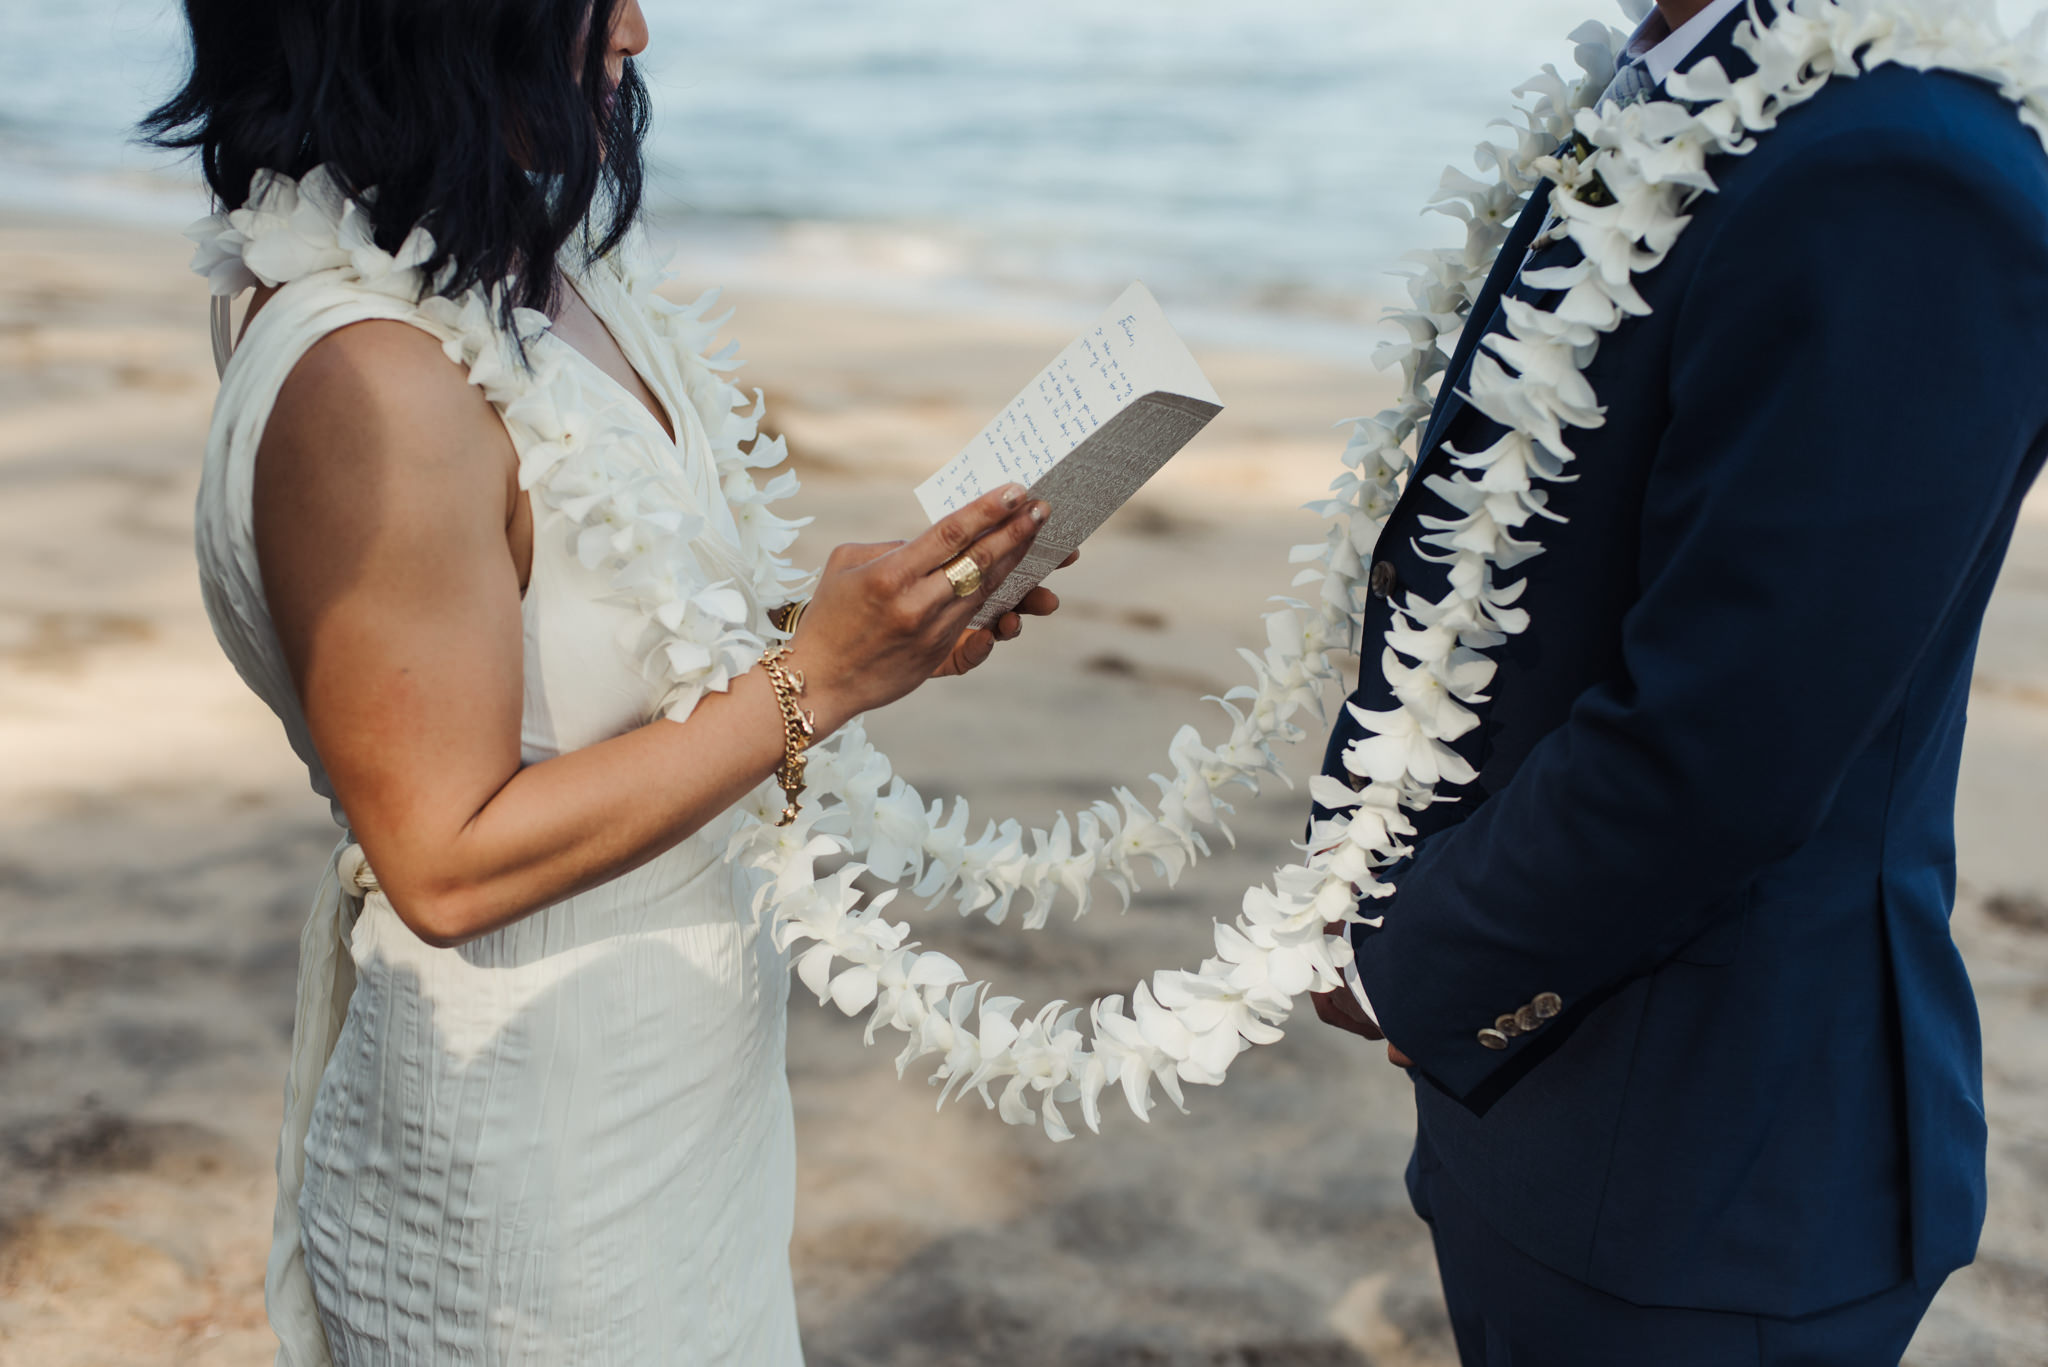 bride reading vows to groom on beach